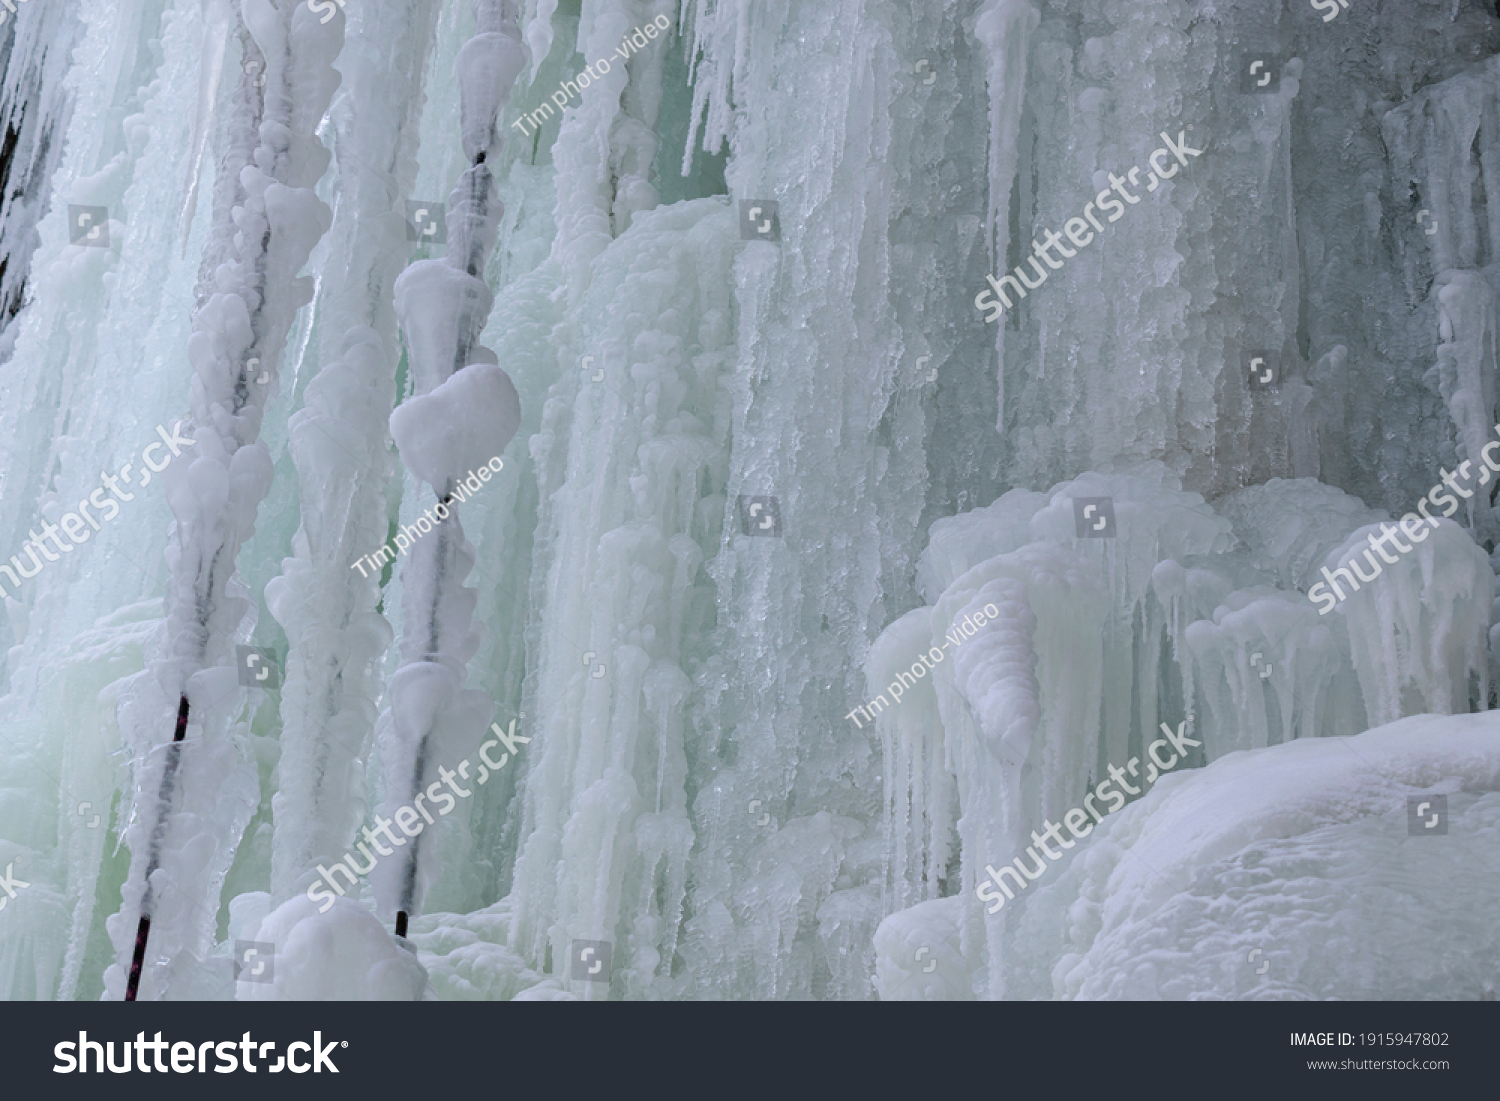 stock-photo-frozen-jets-of-water-ice-cov